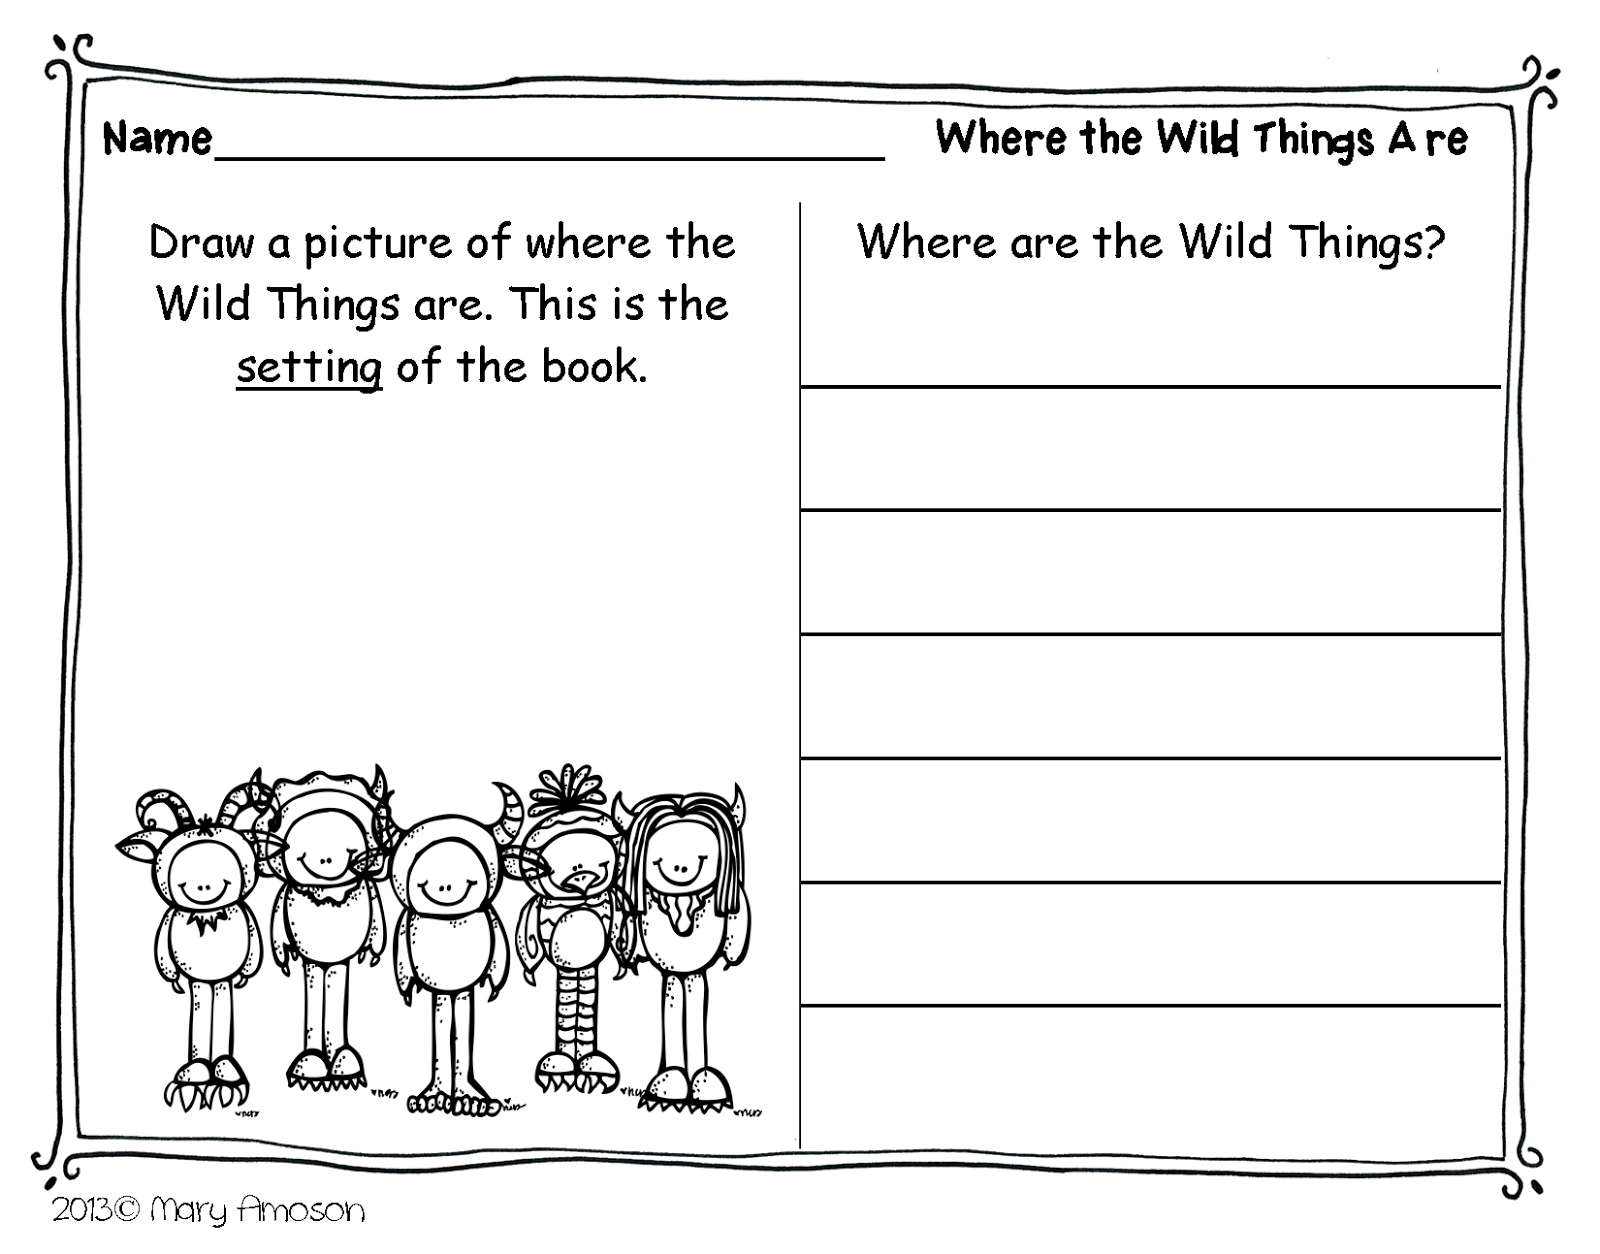 Where The Wild Things Are Free Printable